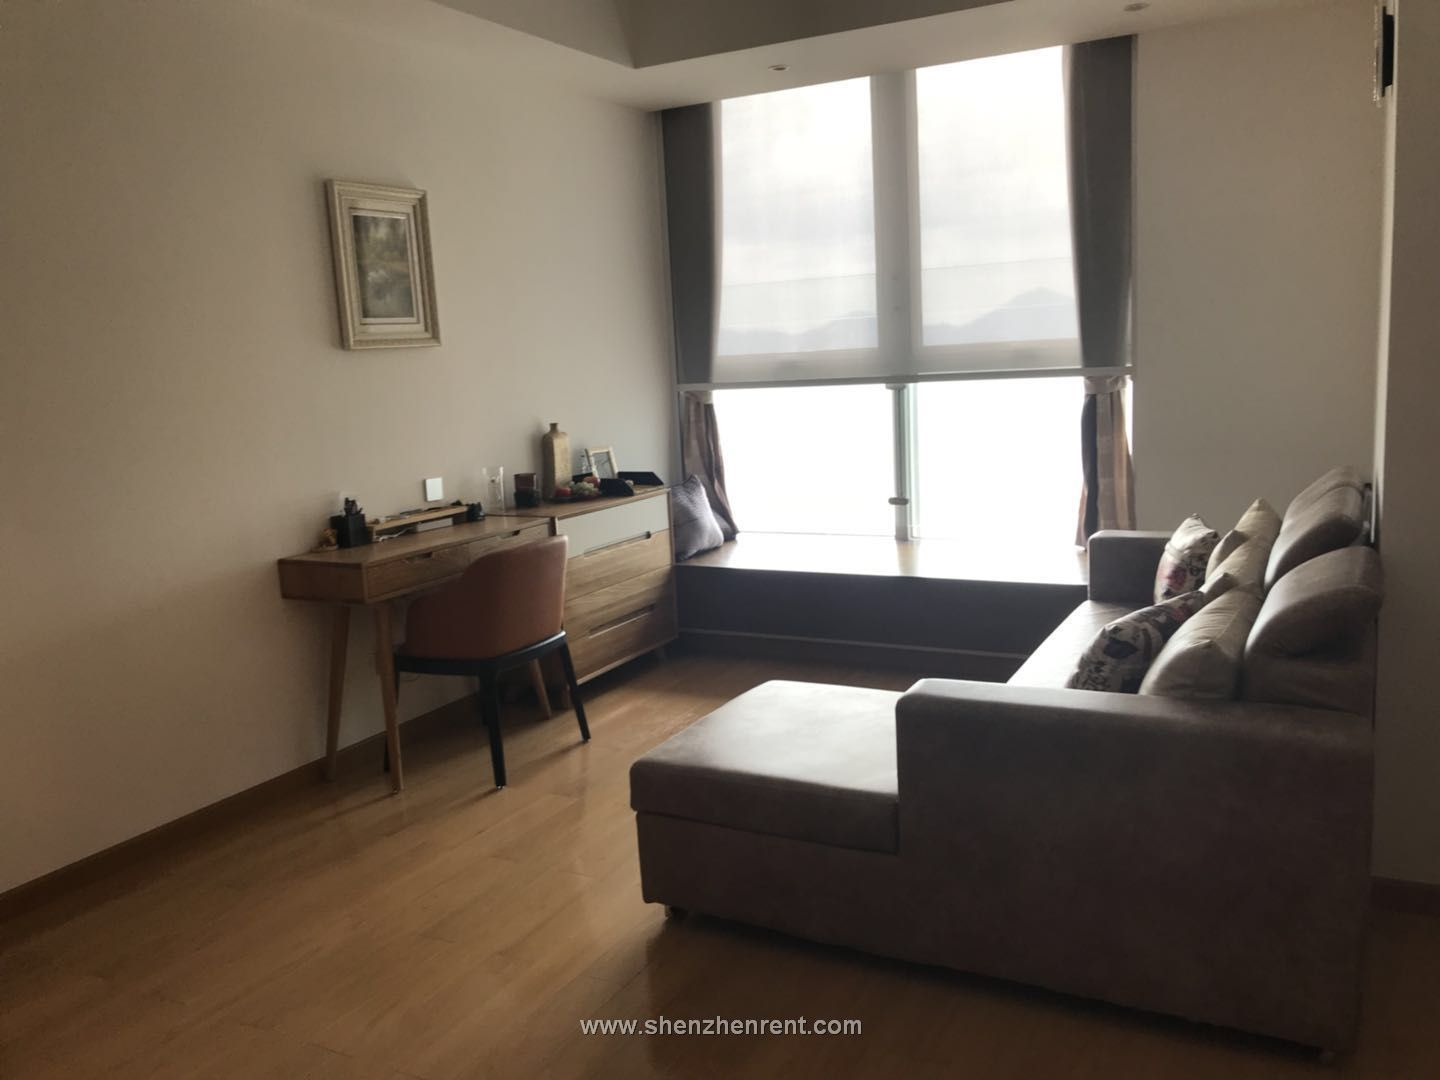 New decoration 1 bedroom with seaview apartment in shekou for rent